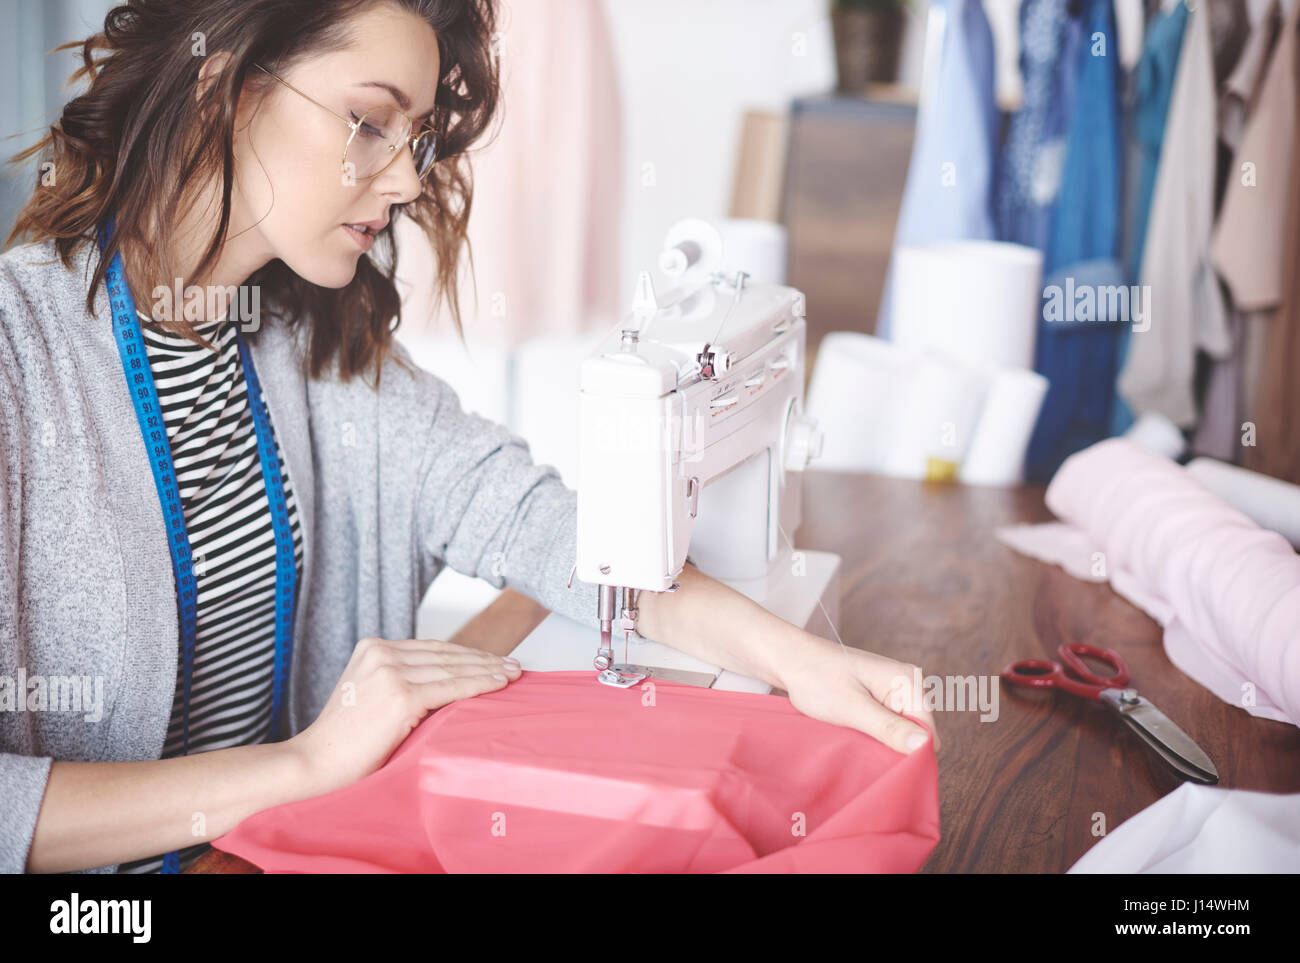 Skilled young tailor sewing on machine - Stock Image